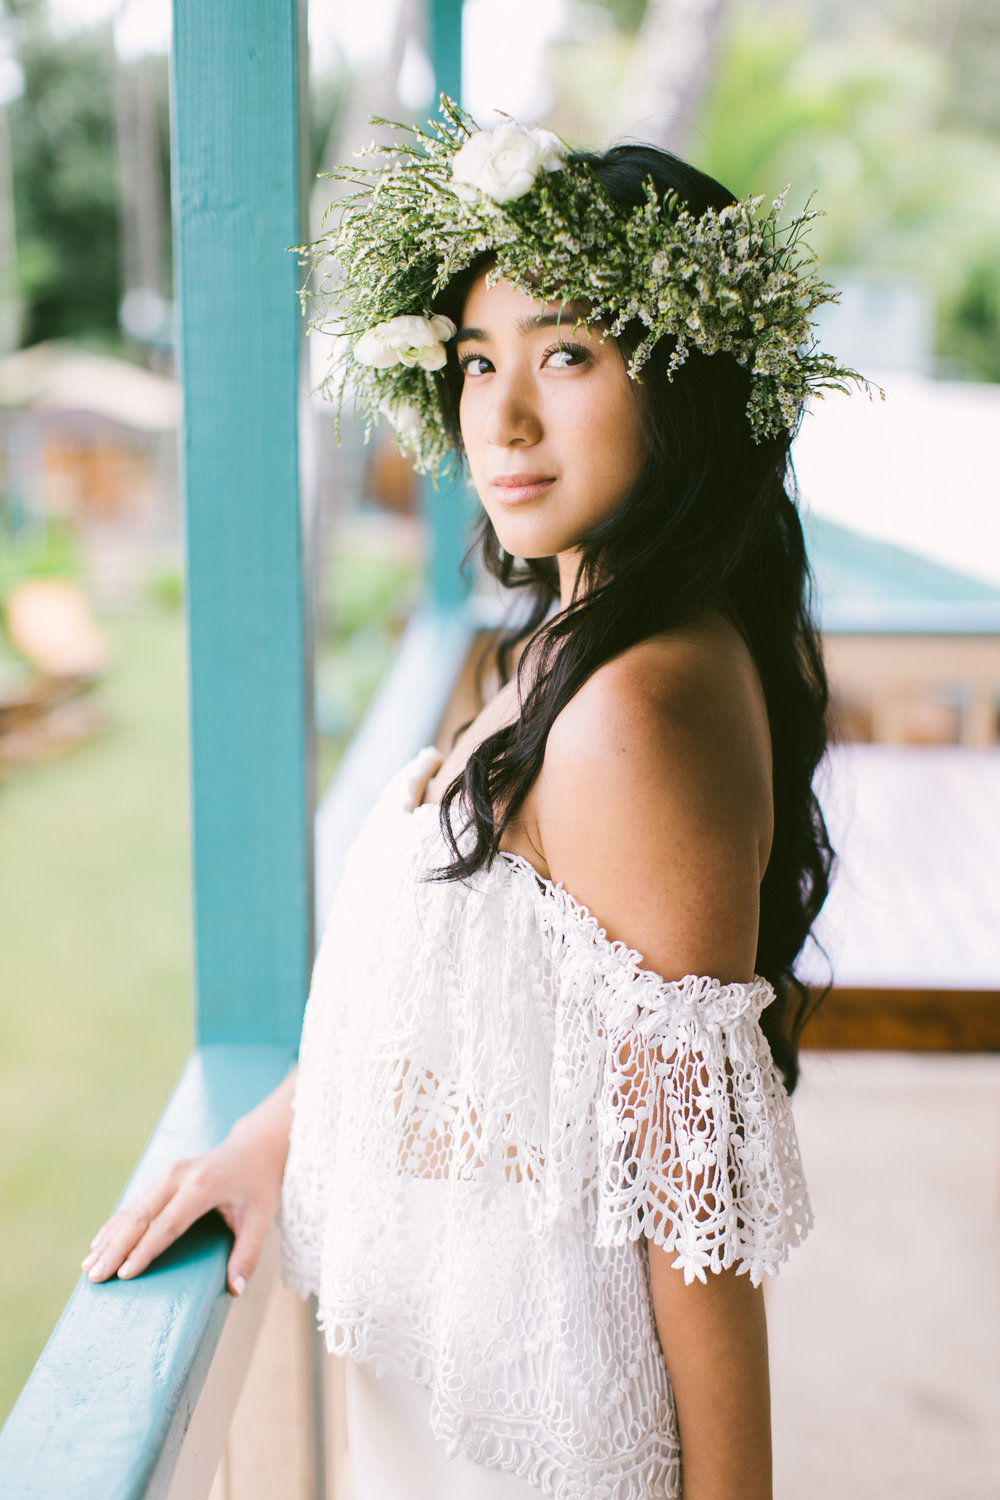 Passion roots oahu hawaii florist floral head pieces wide boho crown by passion roots rebecca arthurs oahu hawaii izmirmasajfo